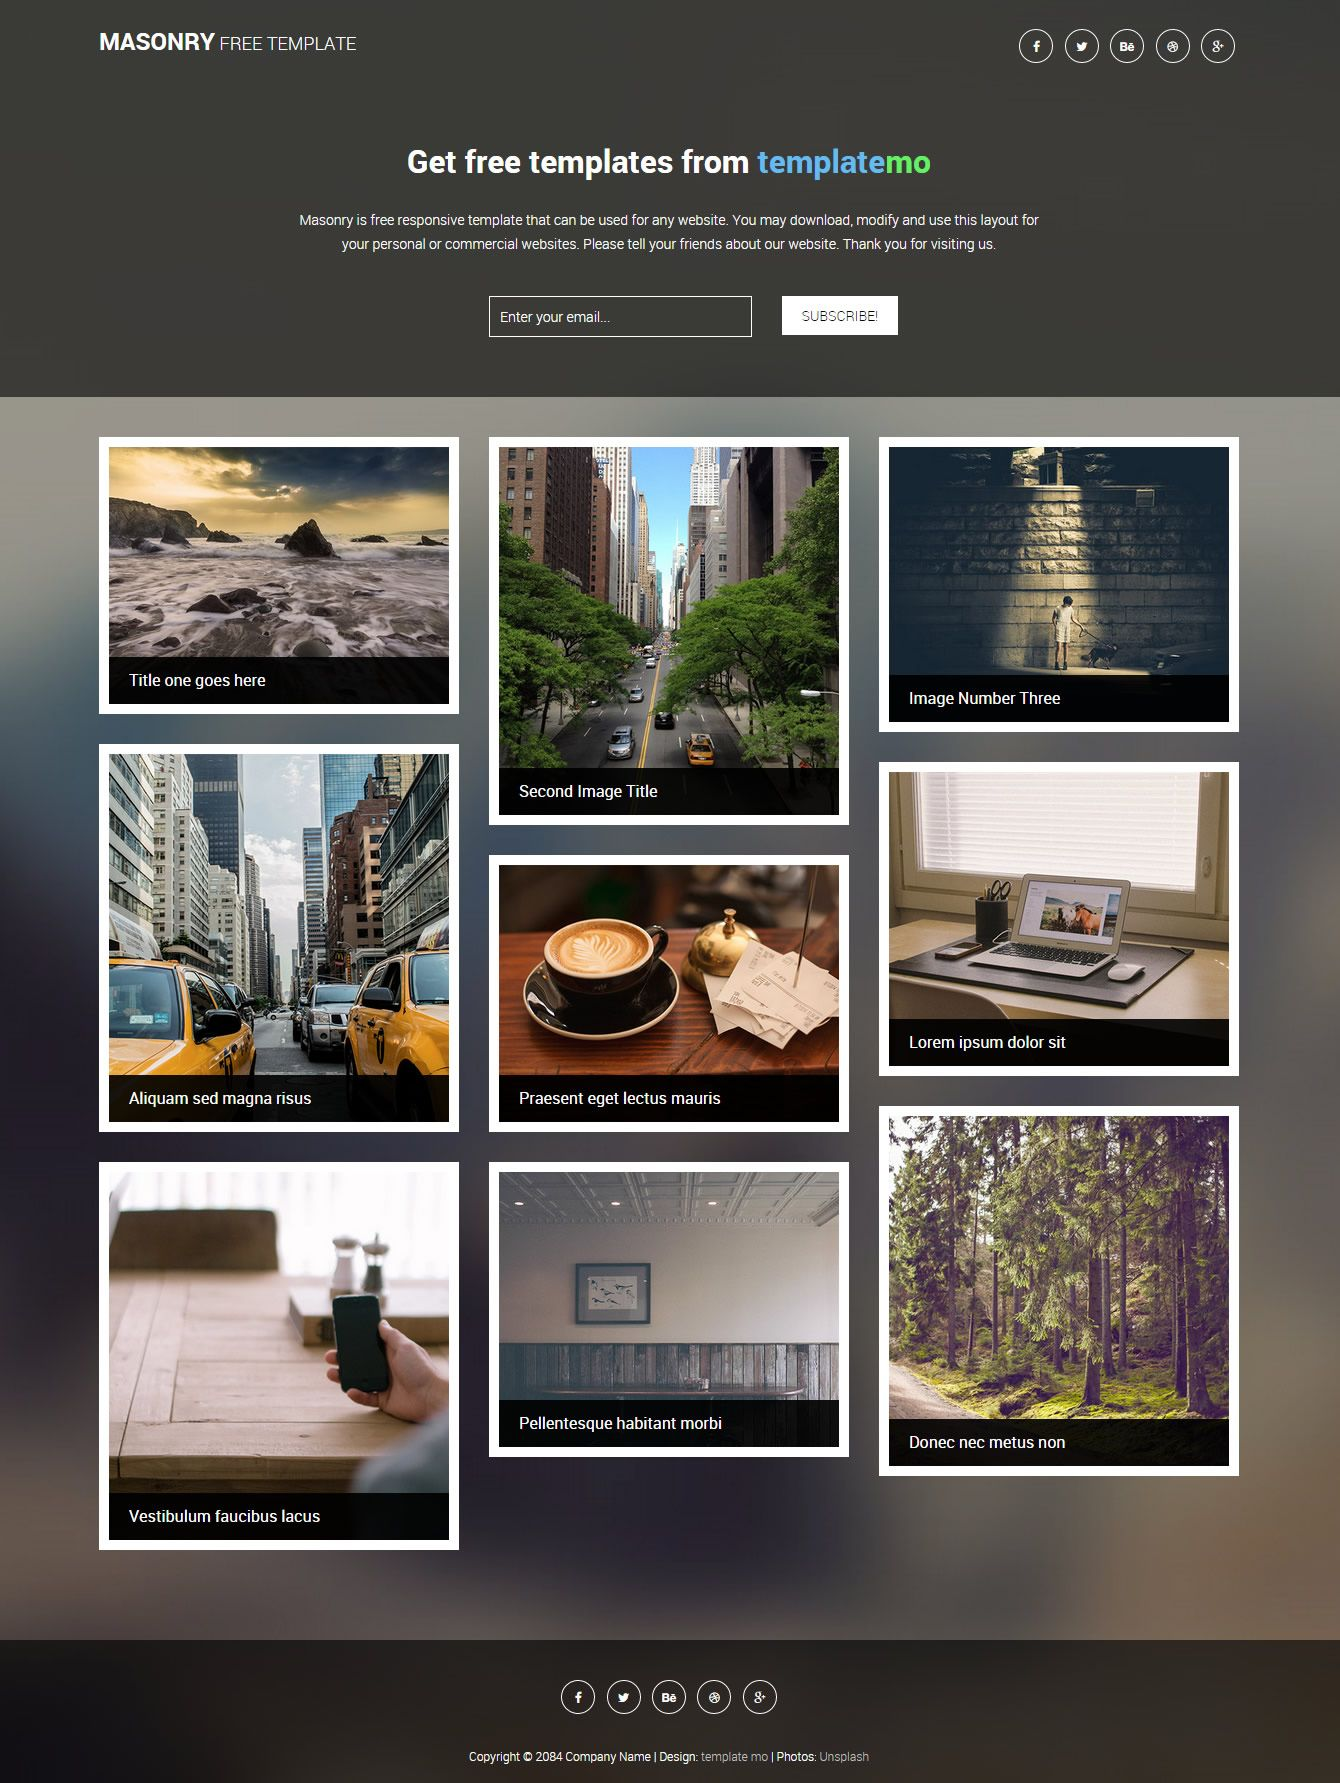 templatemo 434 masonry | Free psd template | Pinterest | Mobile ...